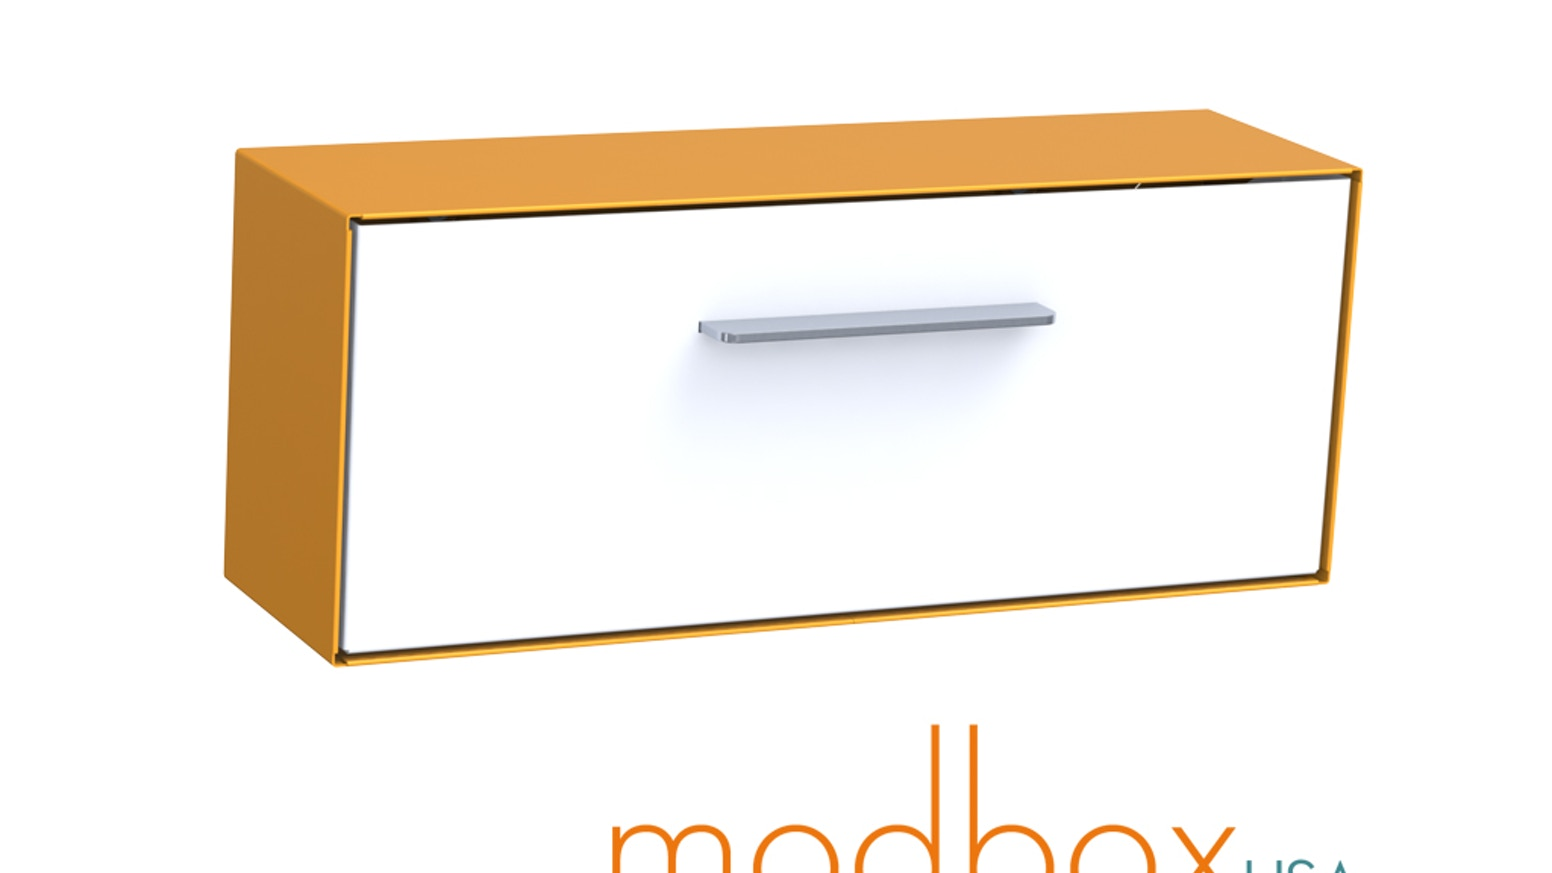 Never before has there been a mailbox that allows you to express yourself like modbox!